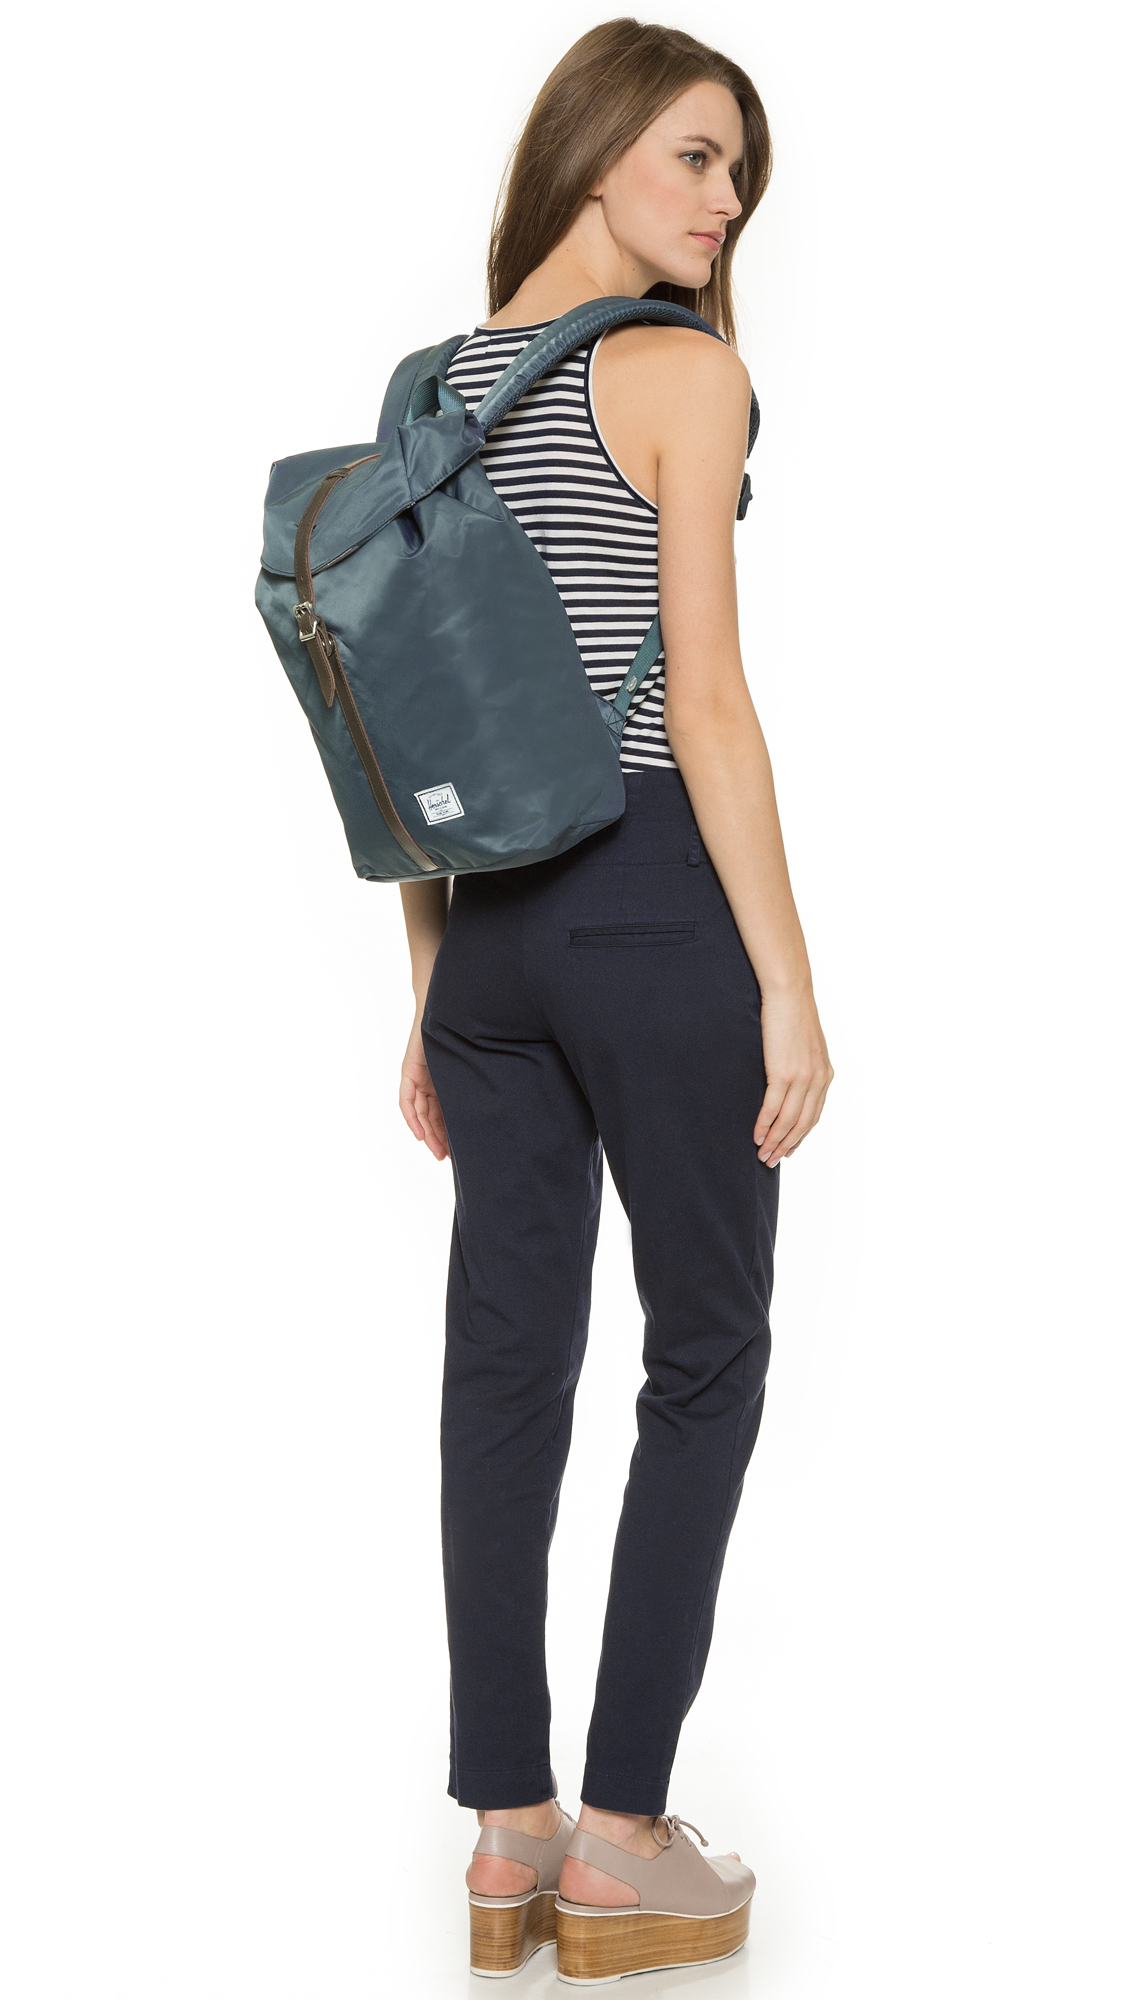 573927add34a Herschel Supply Co. Post Backpack - Navy in Blue - Lyst